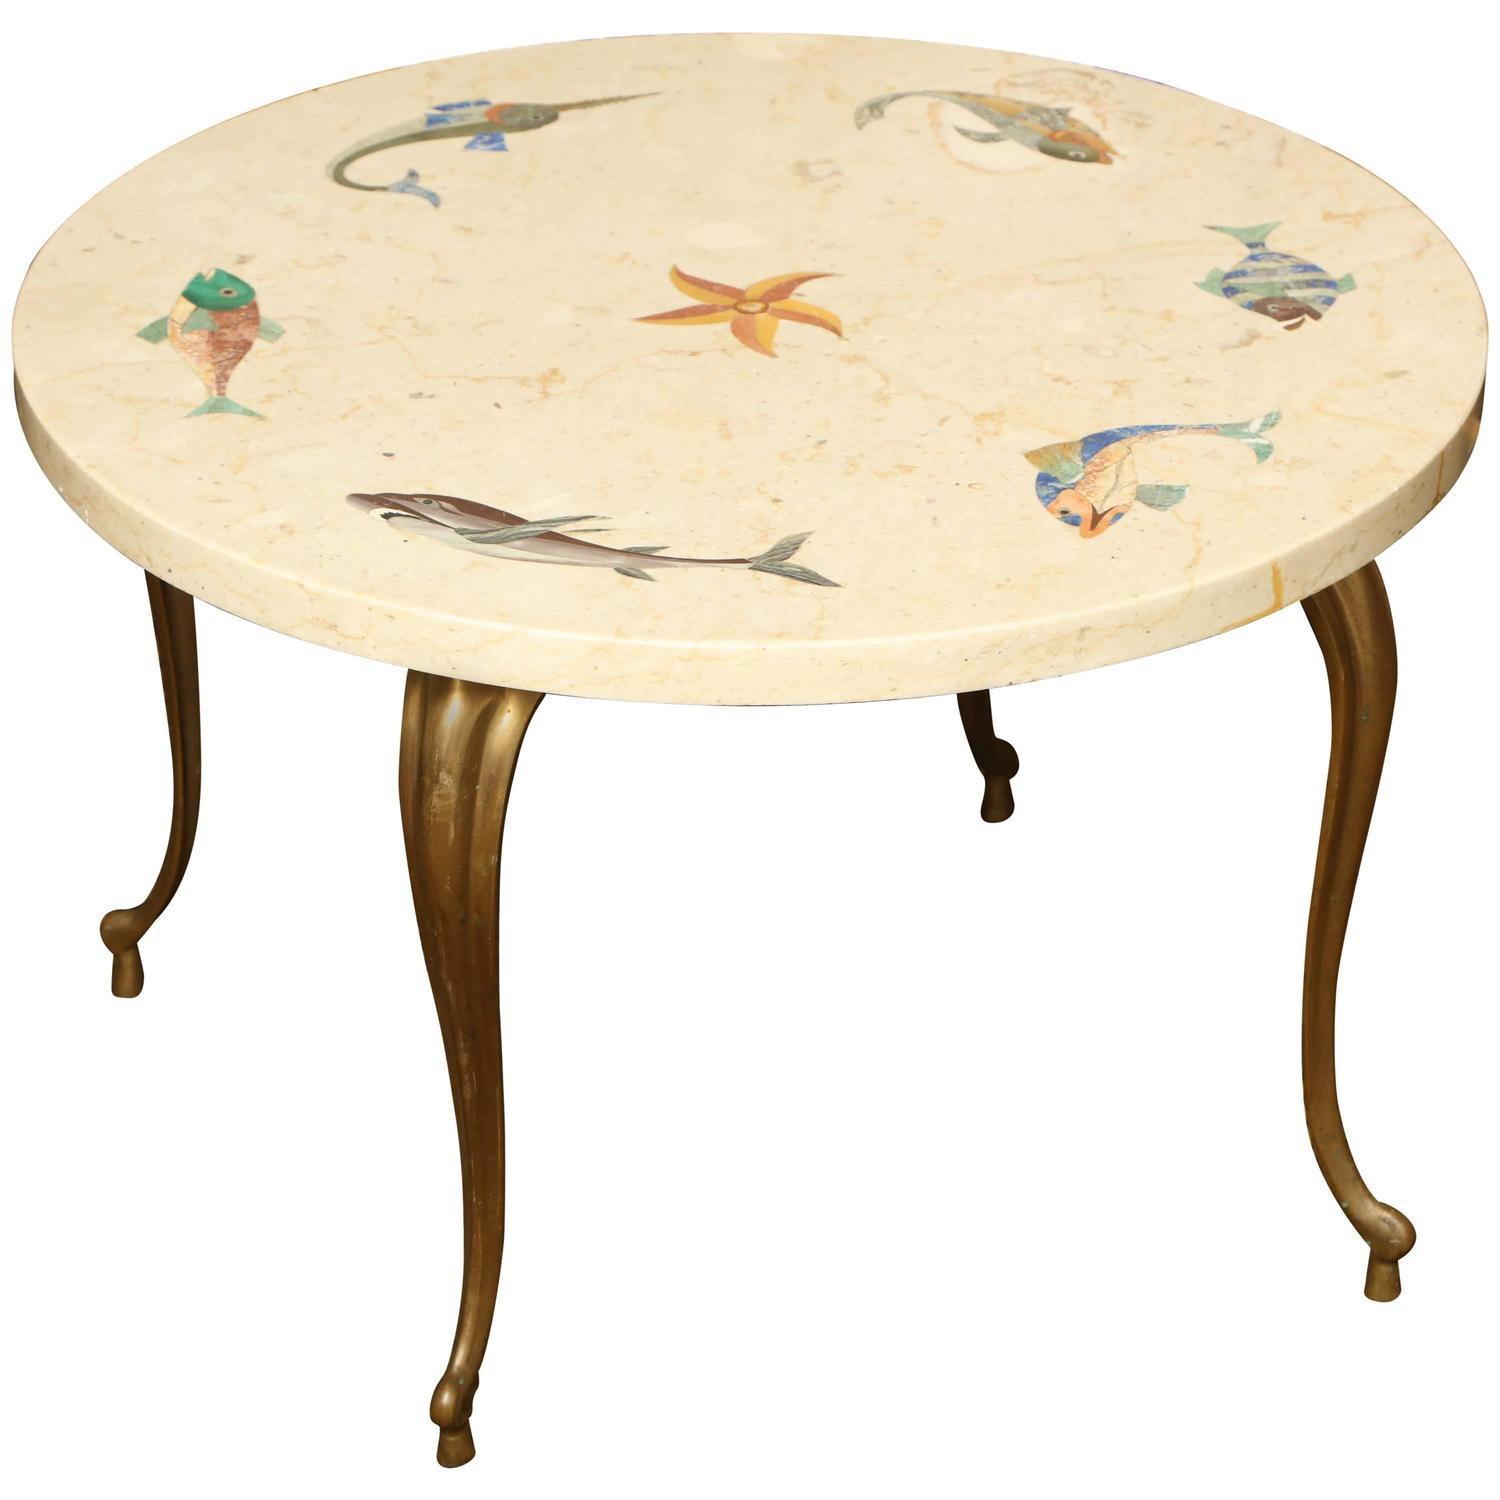 Whimsical Italian 1960s Low Table Inlaid With Marine Life